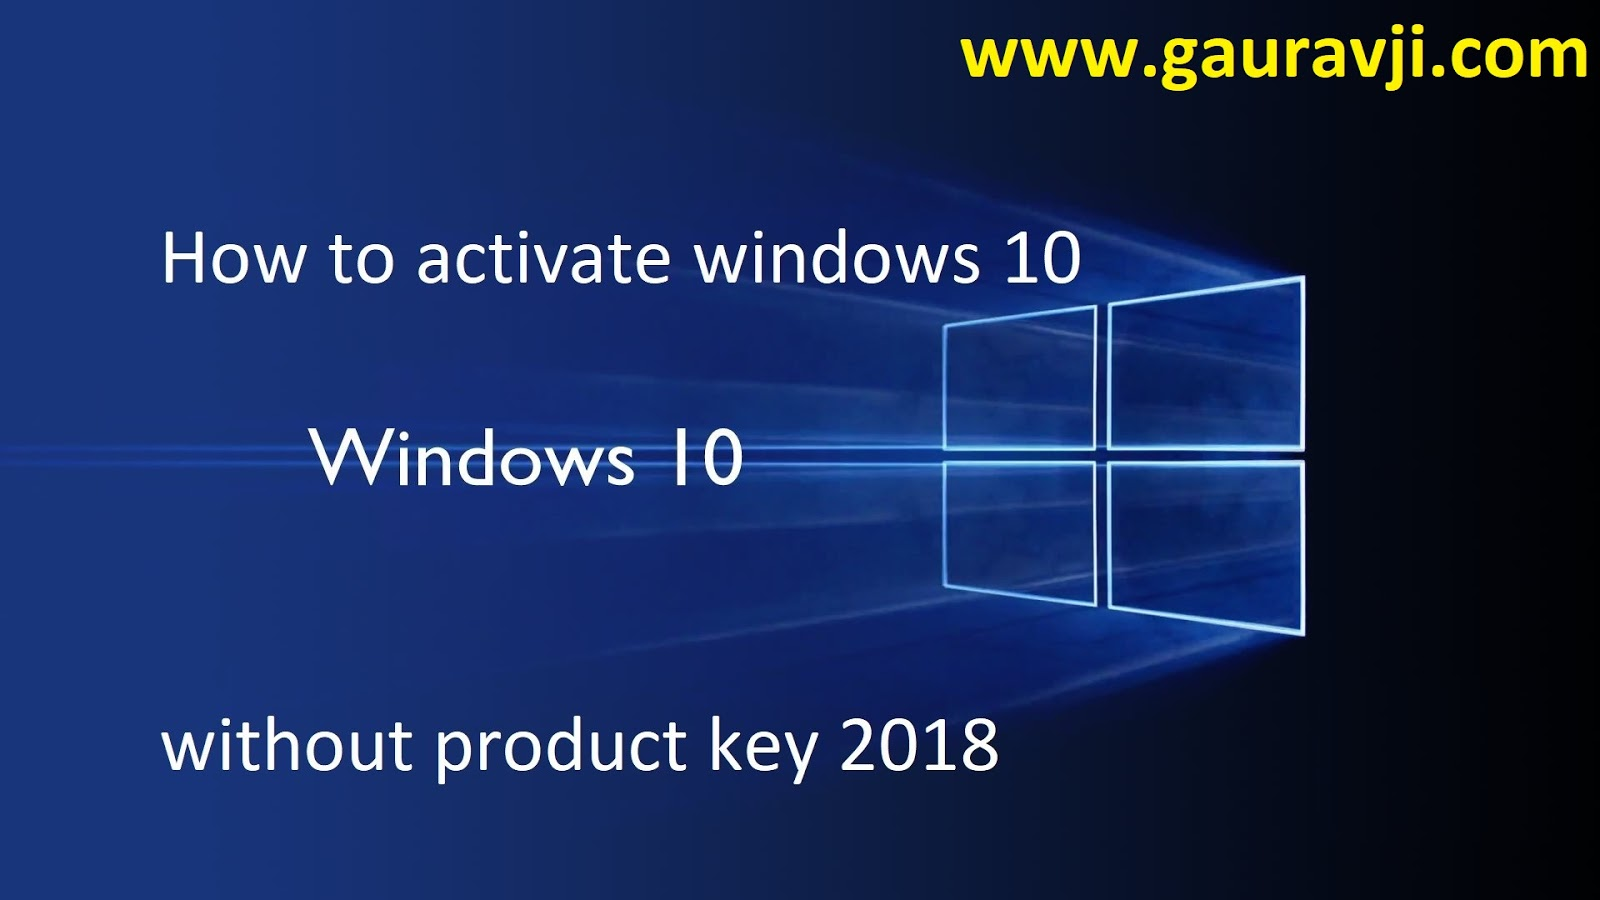 Activate windows os for free gauravji tech blog ccuart Choice Image